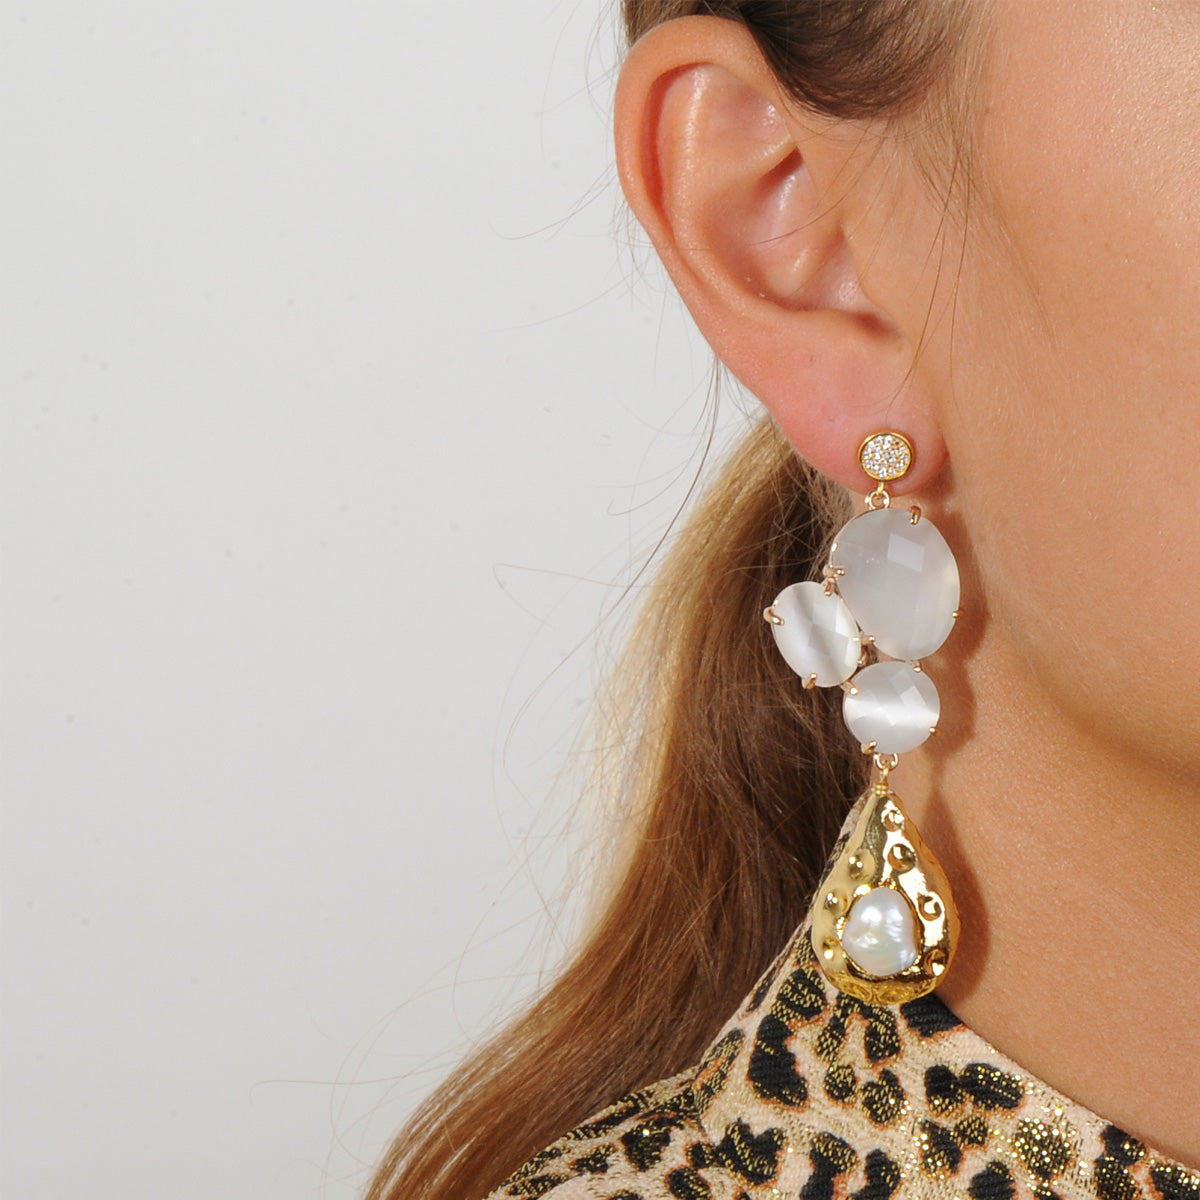 dangle earrings with white cat's eye slabs and pearls katerina psoma 925 silver studs